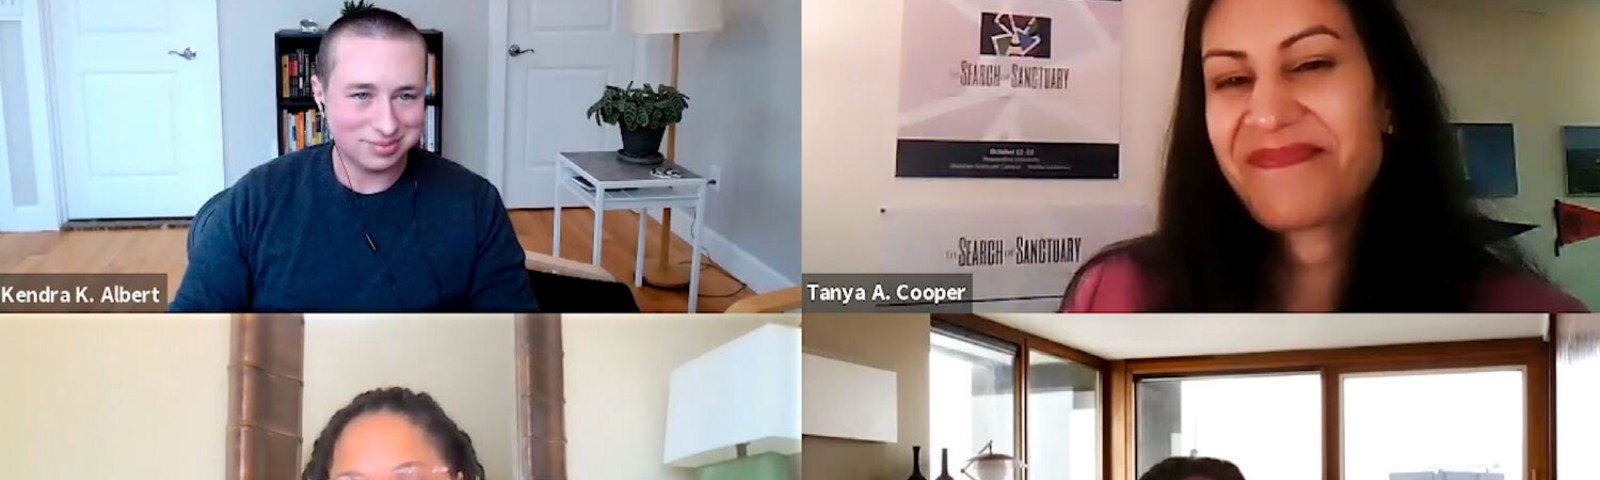 A zoom call with Kendra Albert, Tanya Cooper, Roslyn Satchel, and Thema Bryant-Davis